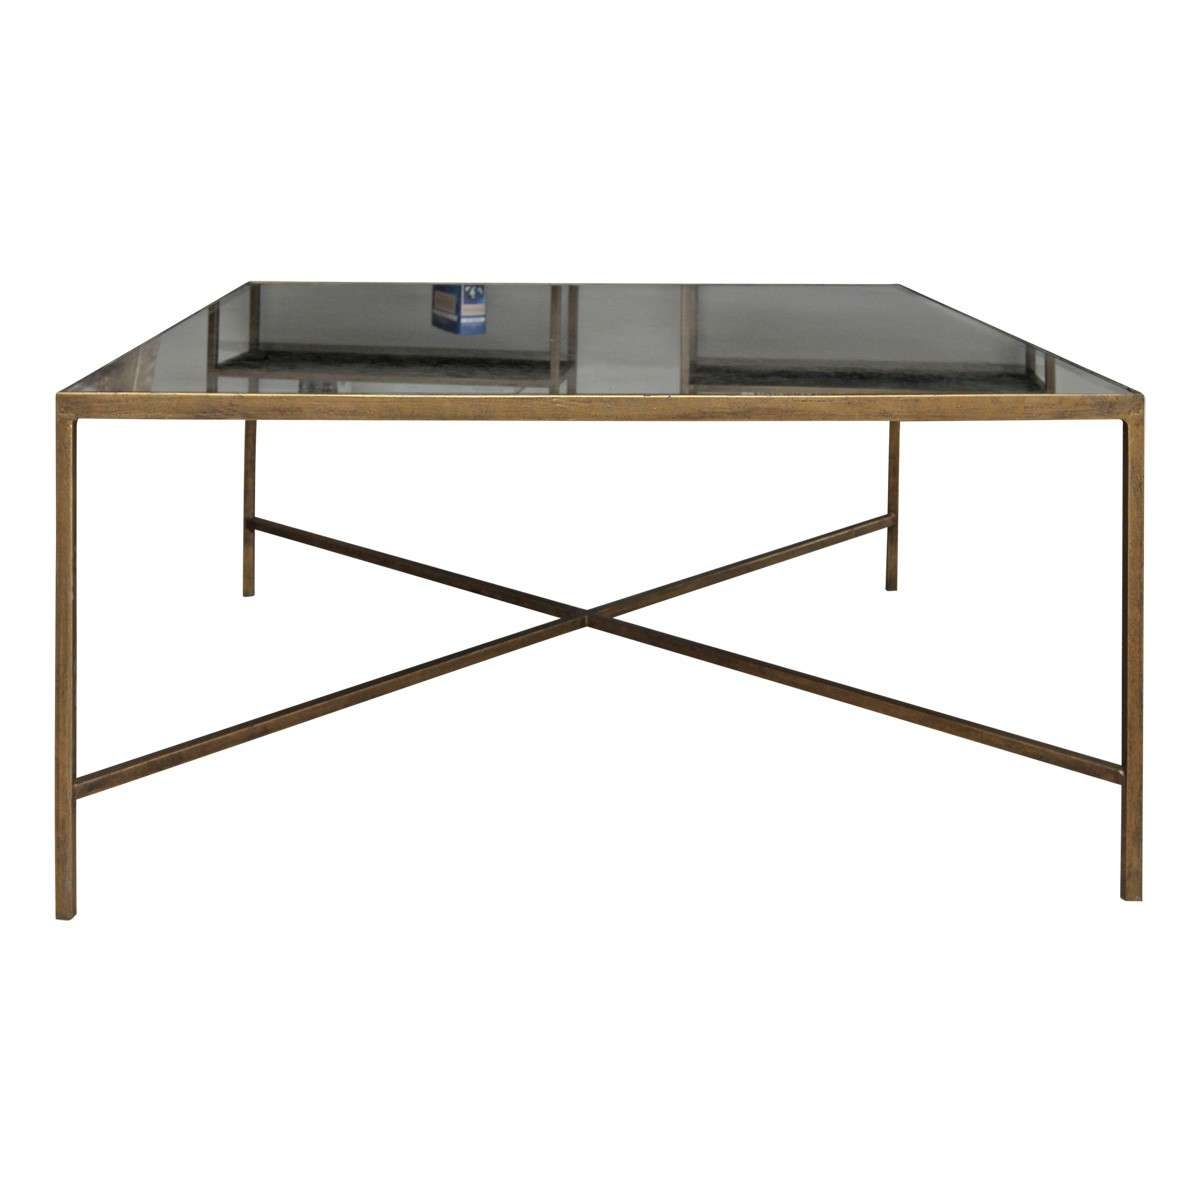 Antiqued Mirrored Coffee Table / Coffee Tables / Thippo In Trendy Antique Mirrored Coffee Tables (Gallery 20 of 20)